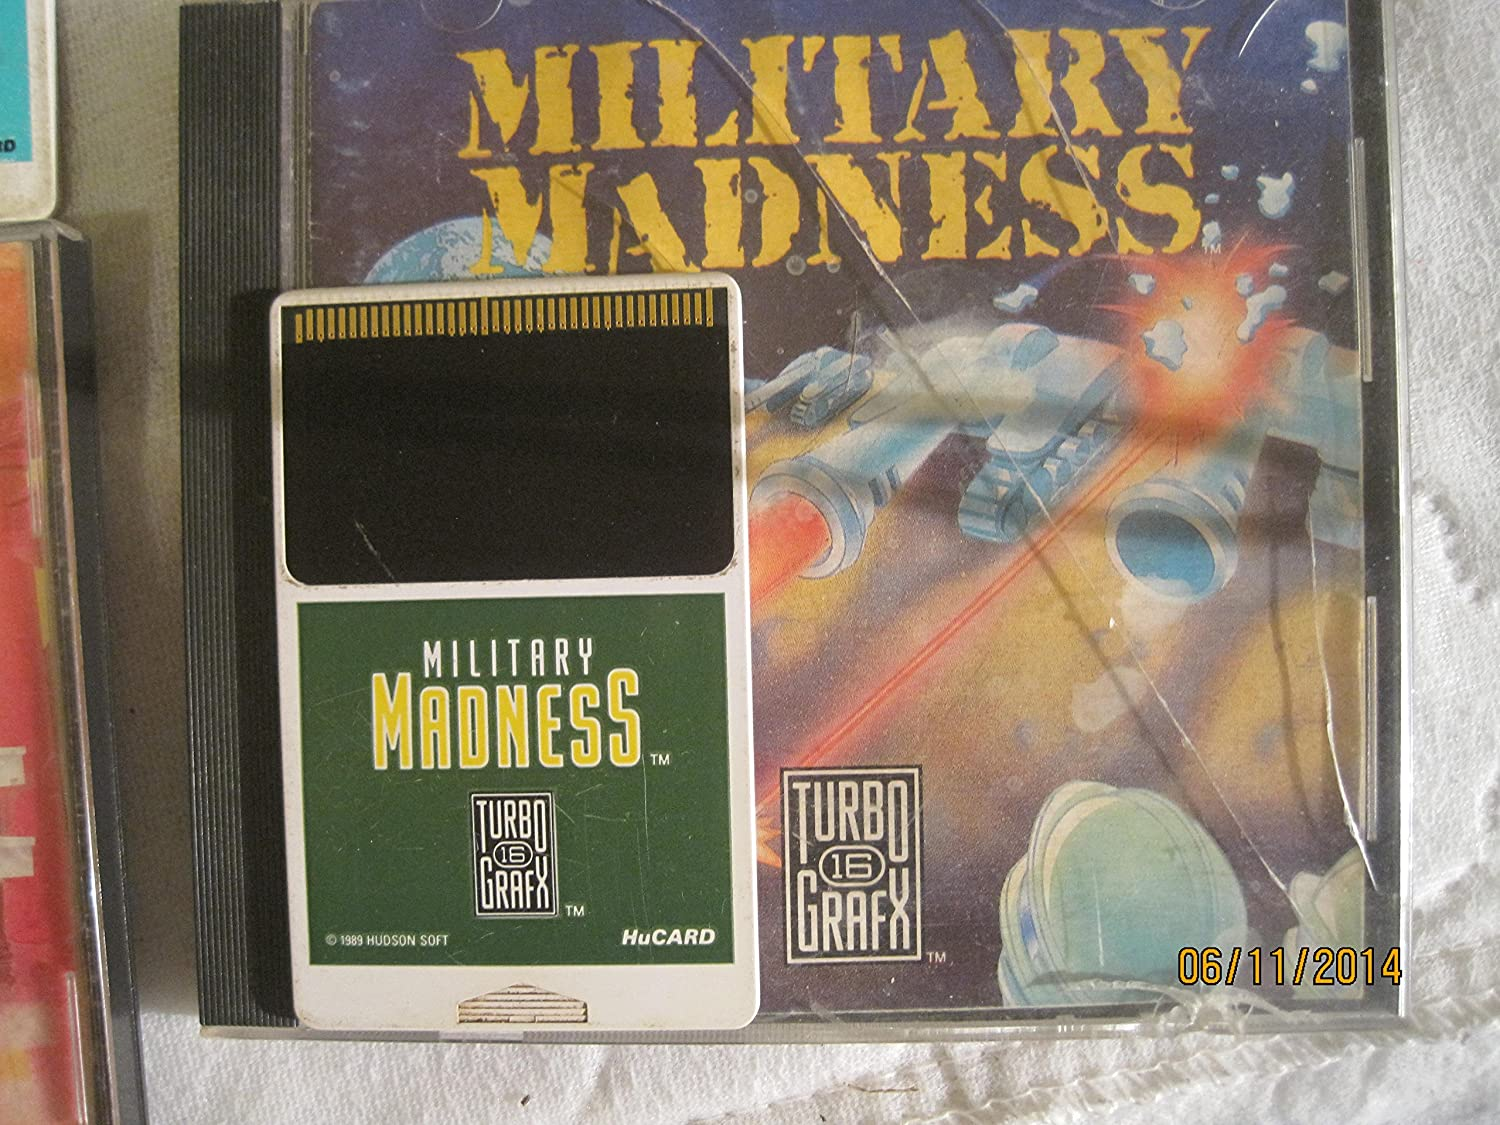 Military Madness TurboGrafx 16 Video Game